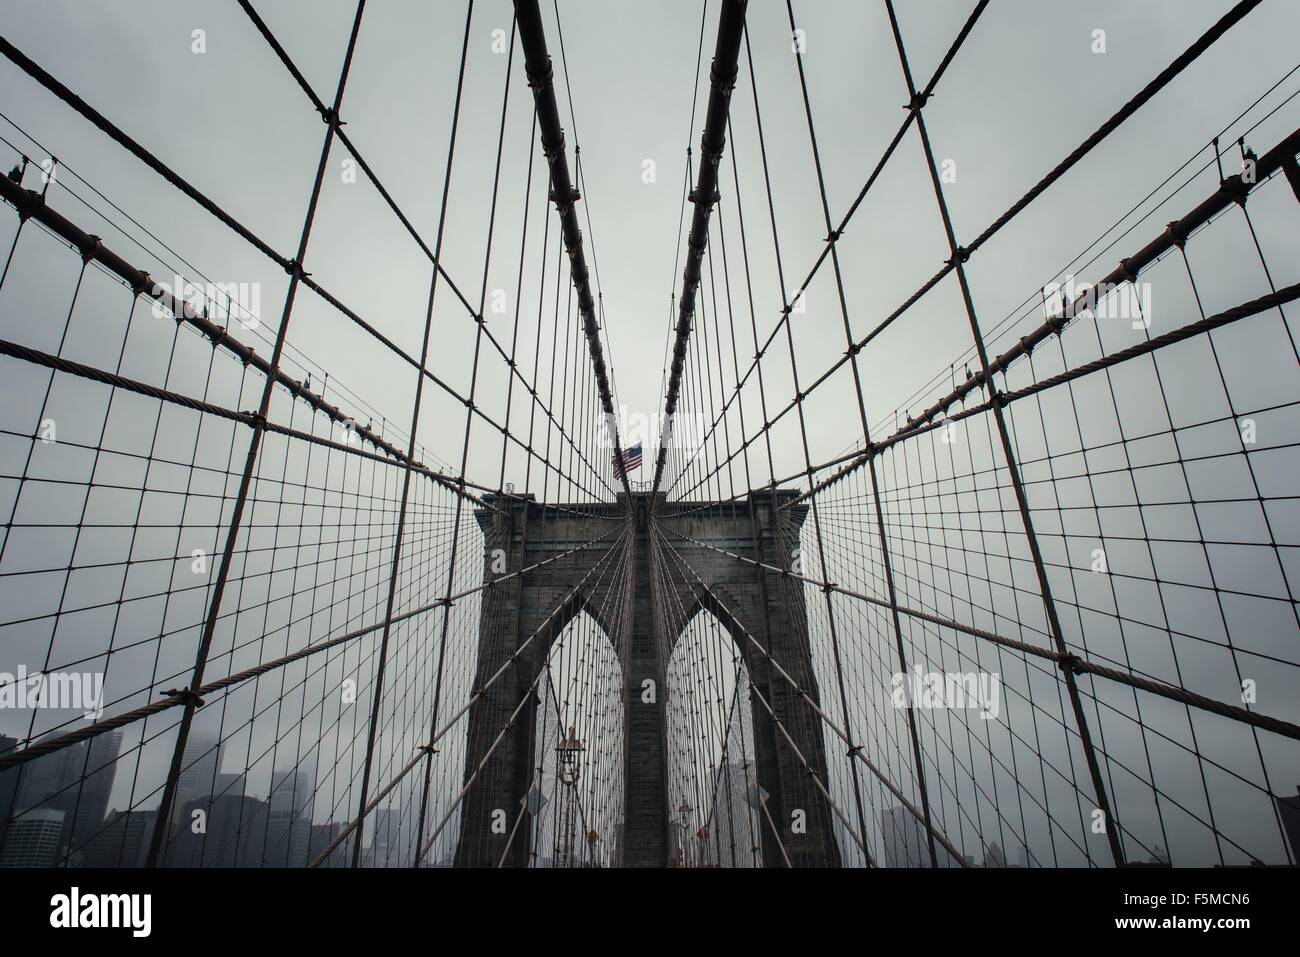 Low angle view of Brooklyn Bridge symmetry, New York, USA - Stock Image